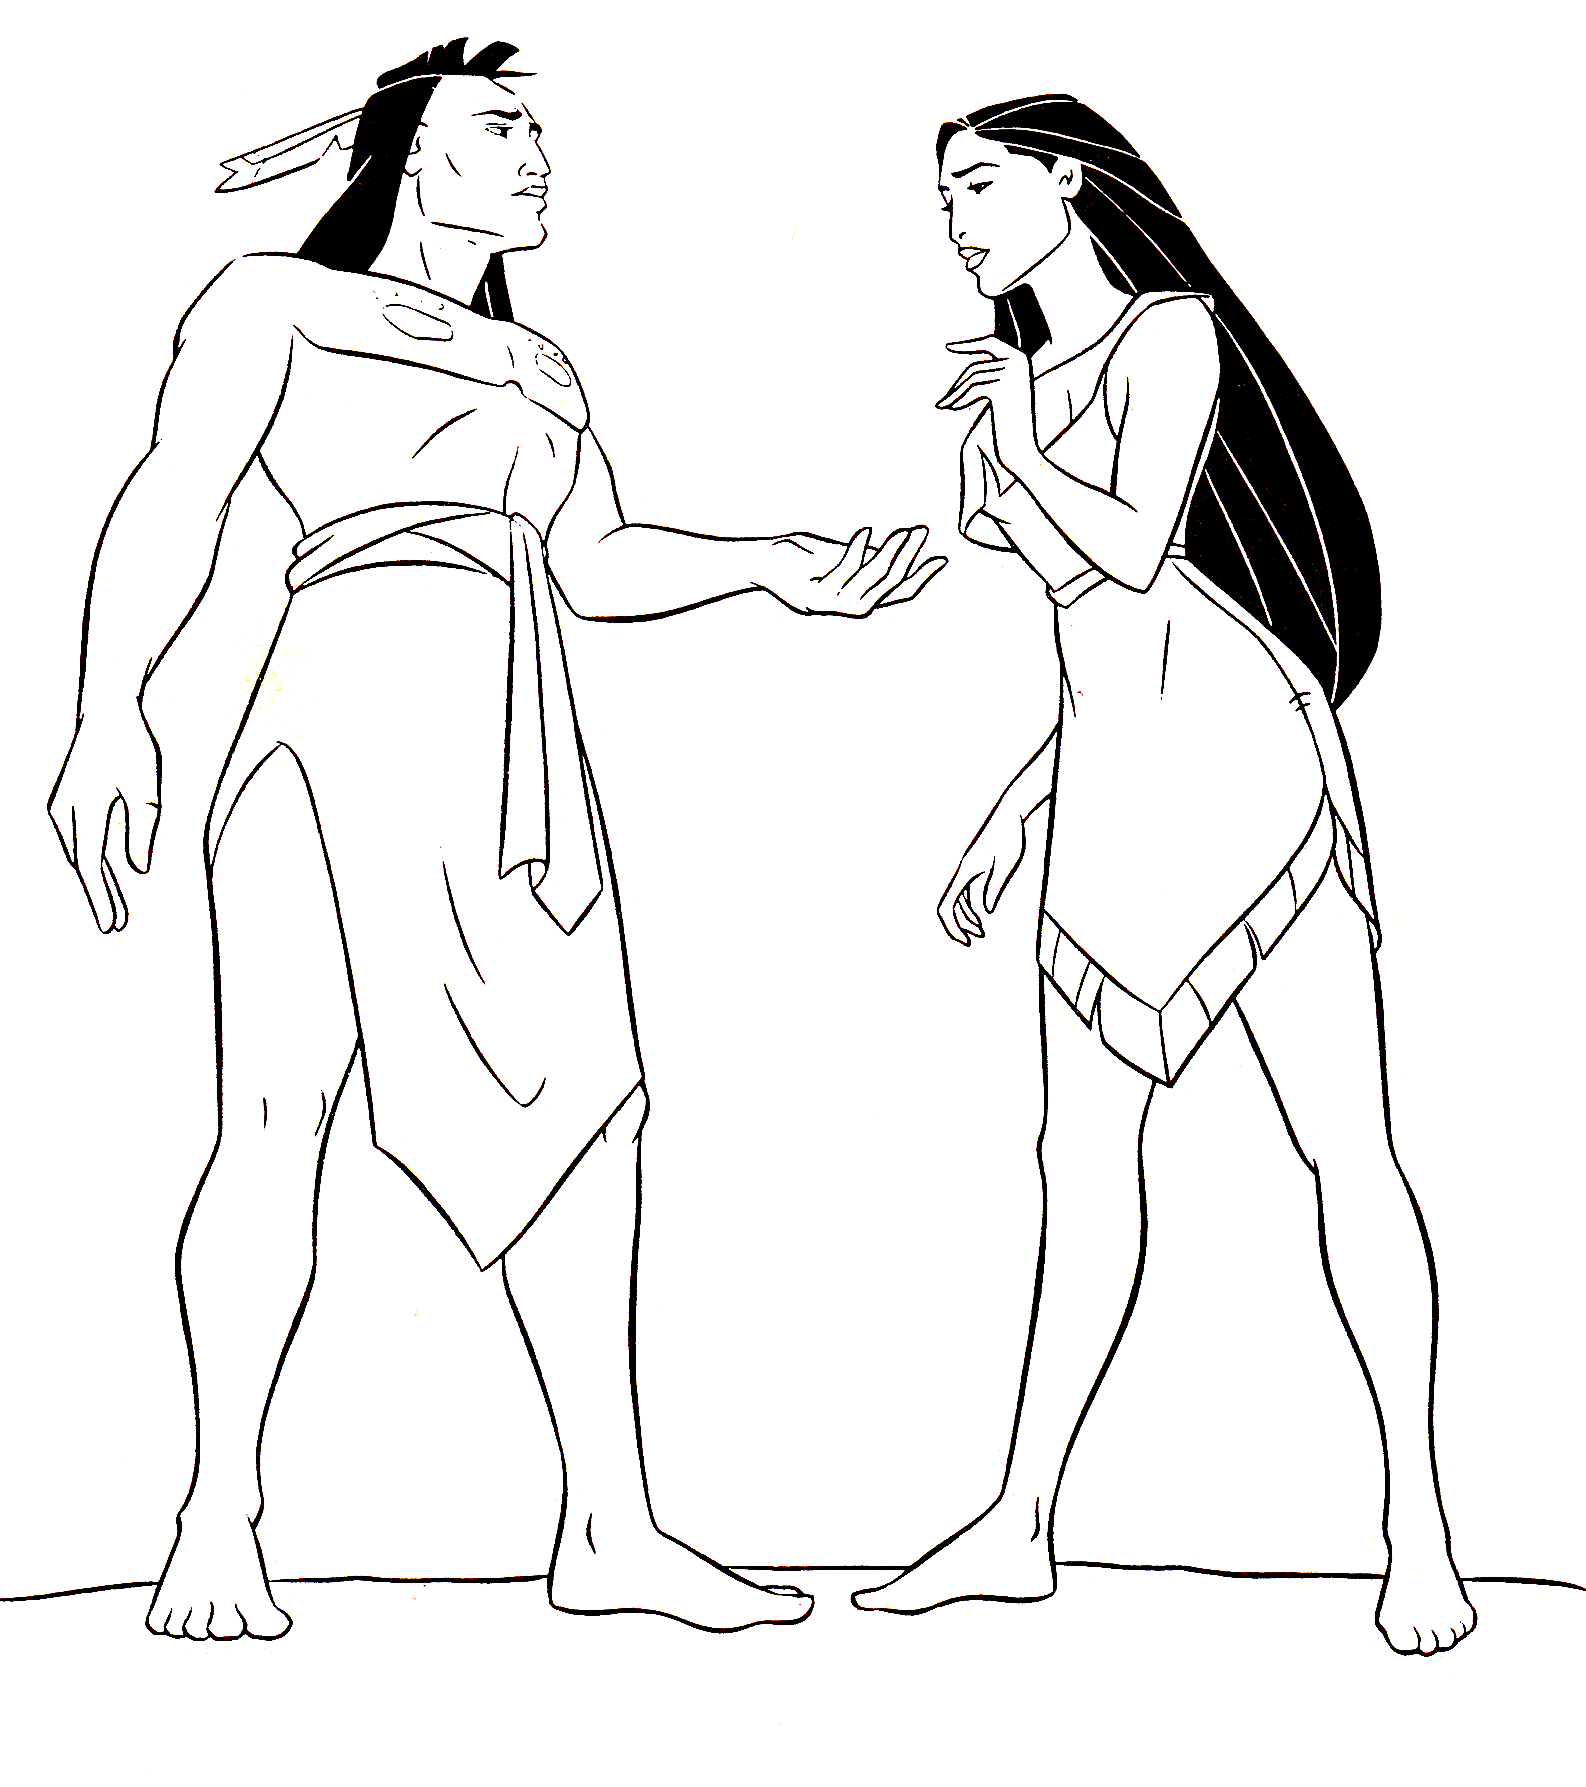 Walt Disney Coloring Pages - Kocoum & Pocahontas